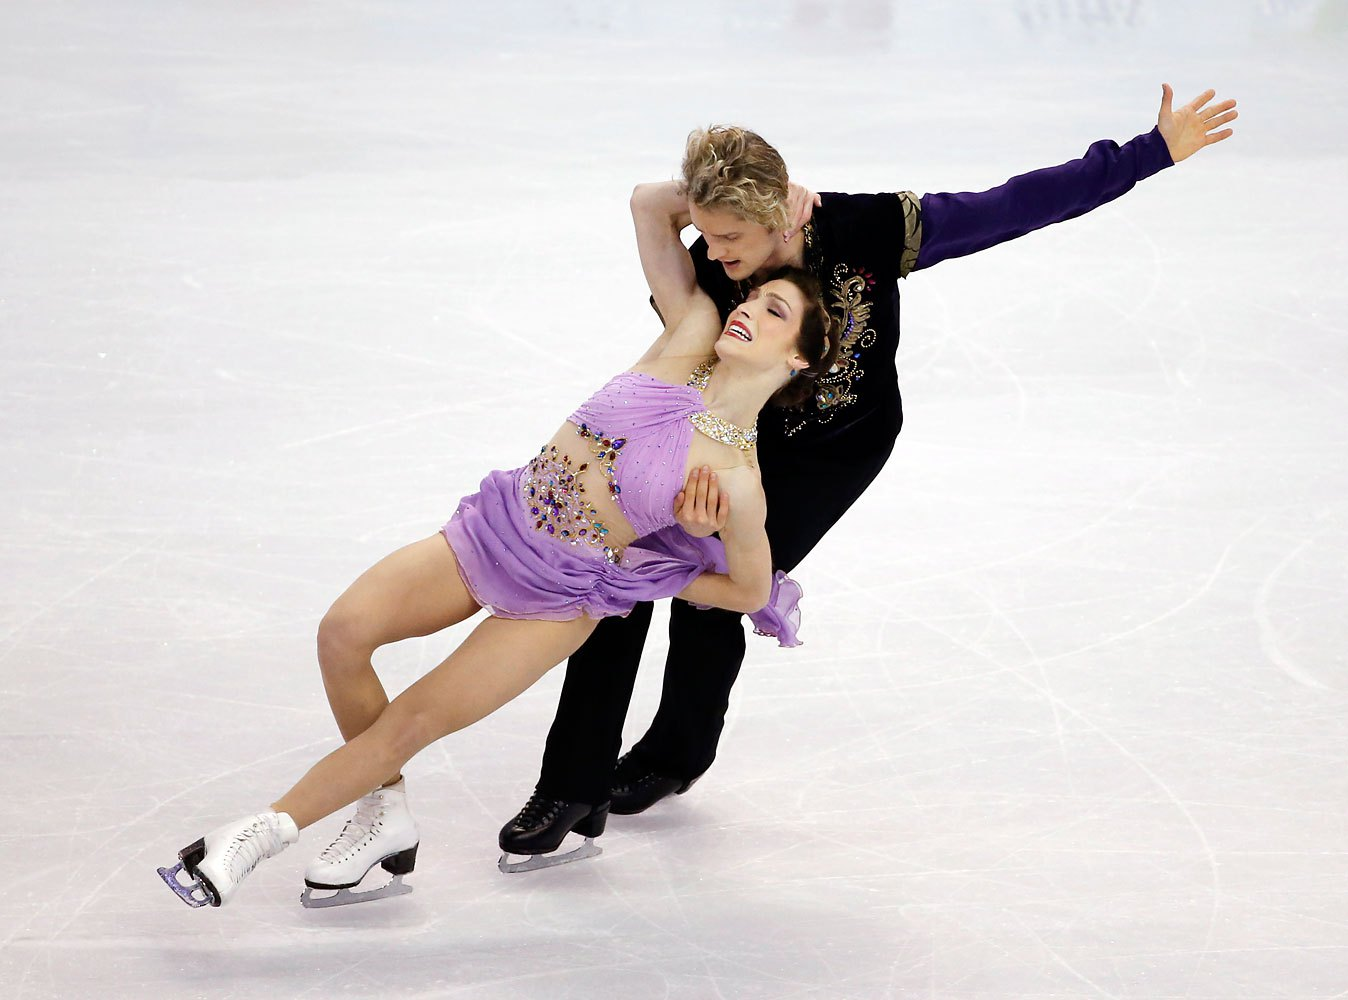 A month earlier, Davis and White skated the same program during the U.S. Figure Skating Championships in Boston, except in lavender. They used the same outfits to win the U.S.'s first gold in ice dance in Sochi, although their dressmakers also created an aqua version.